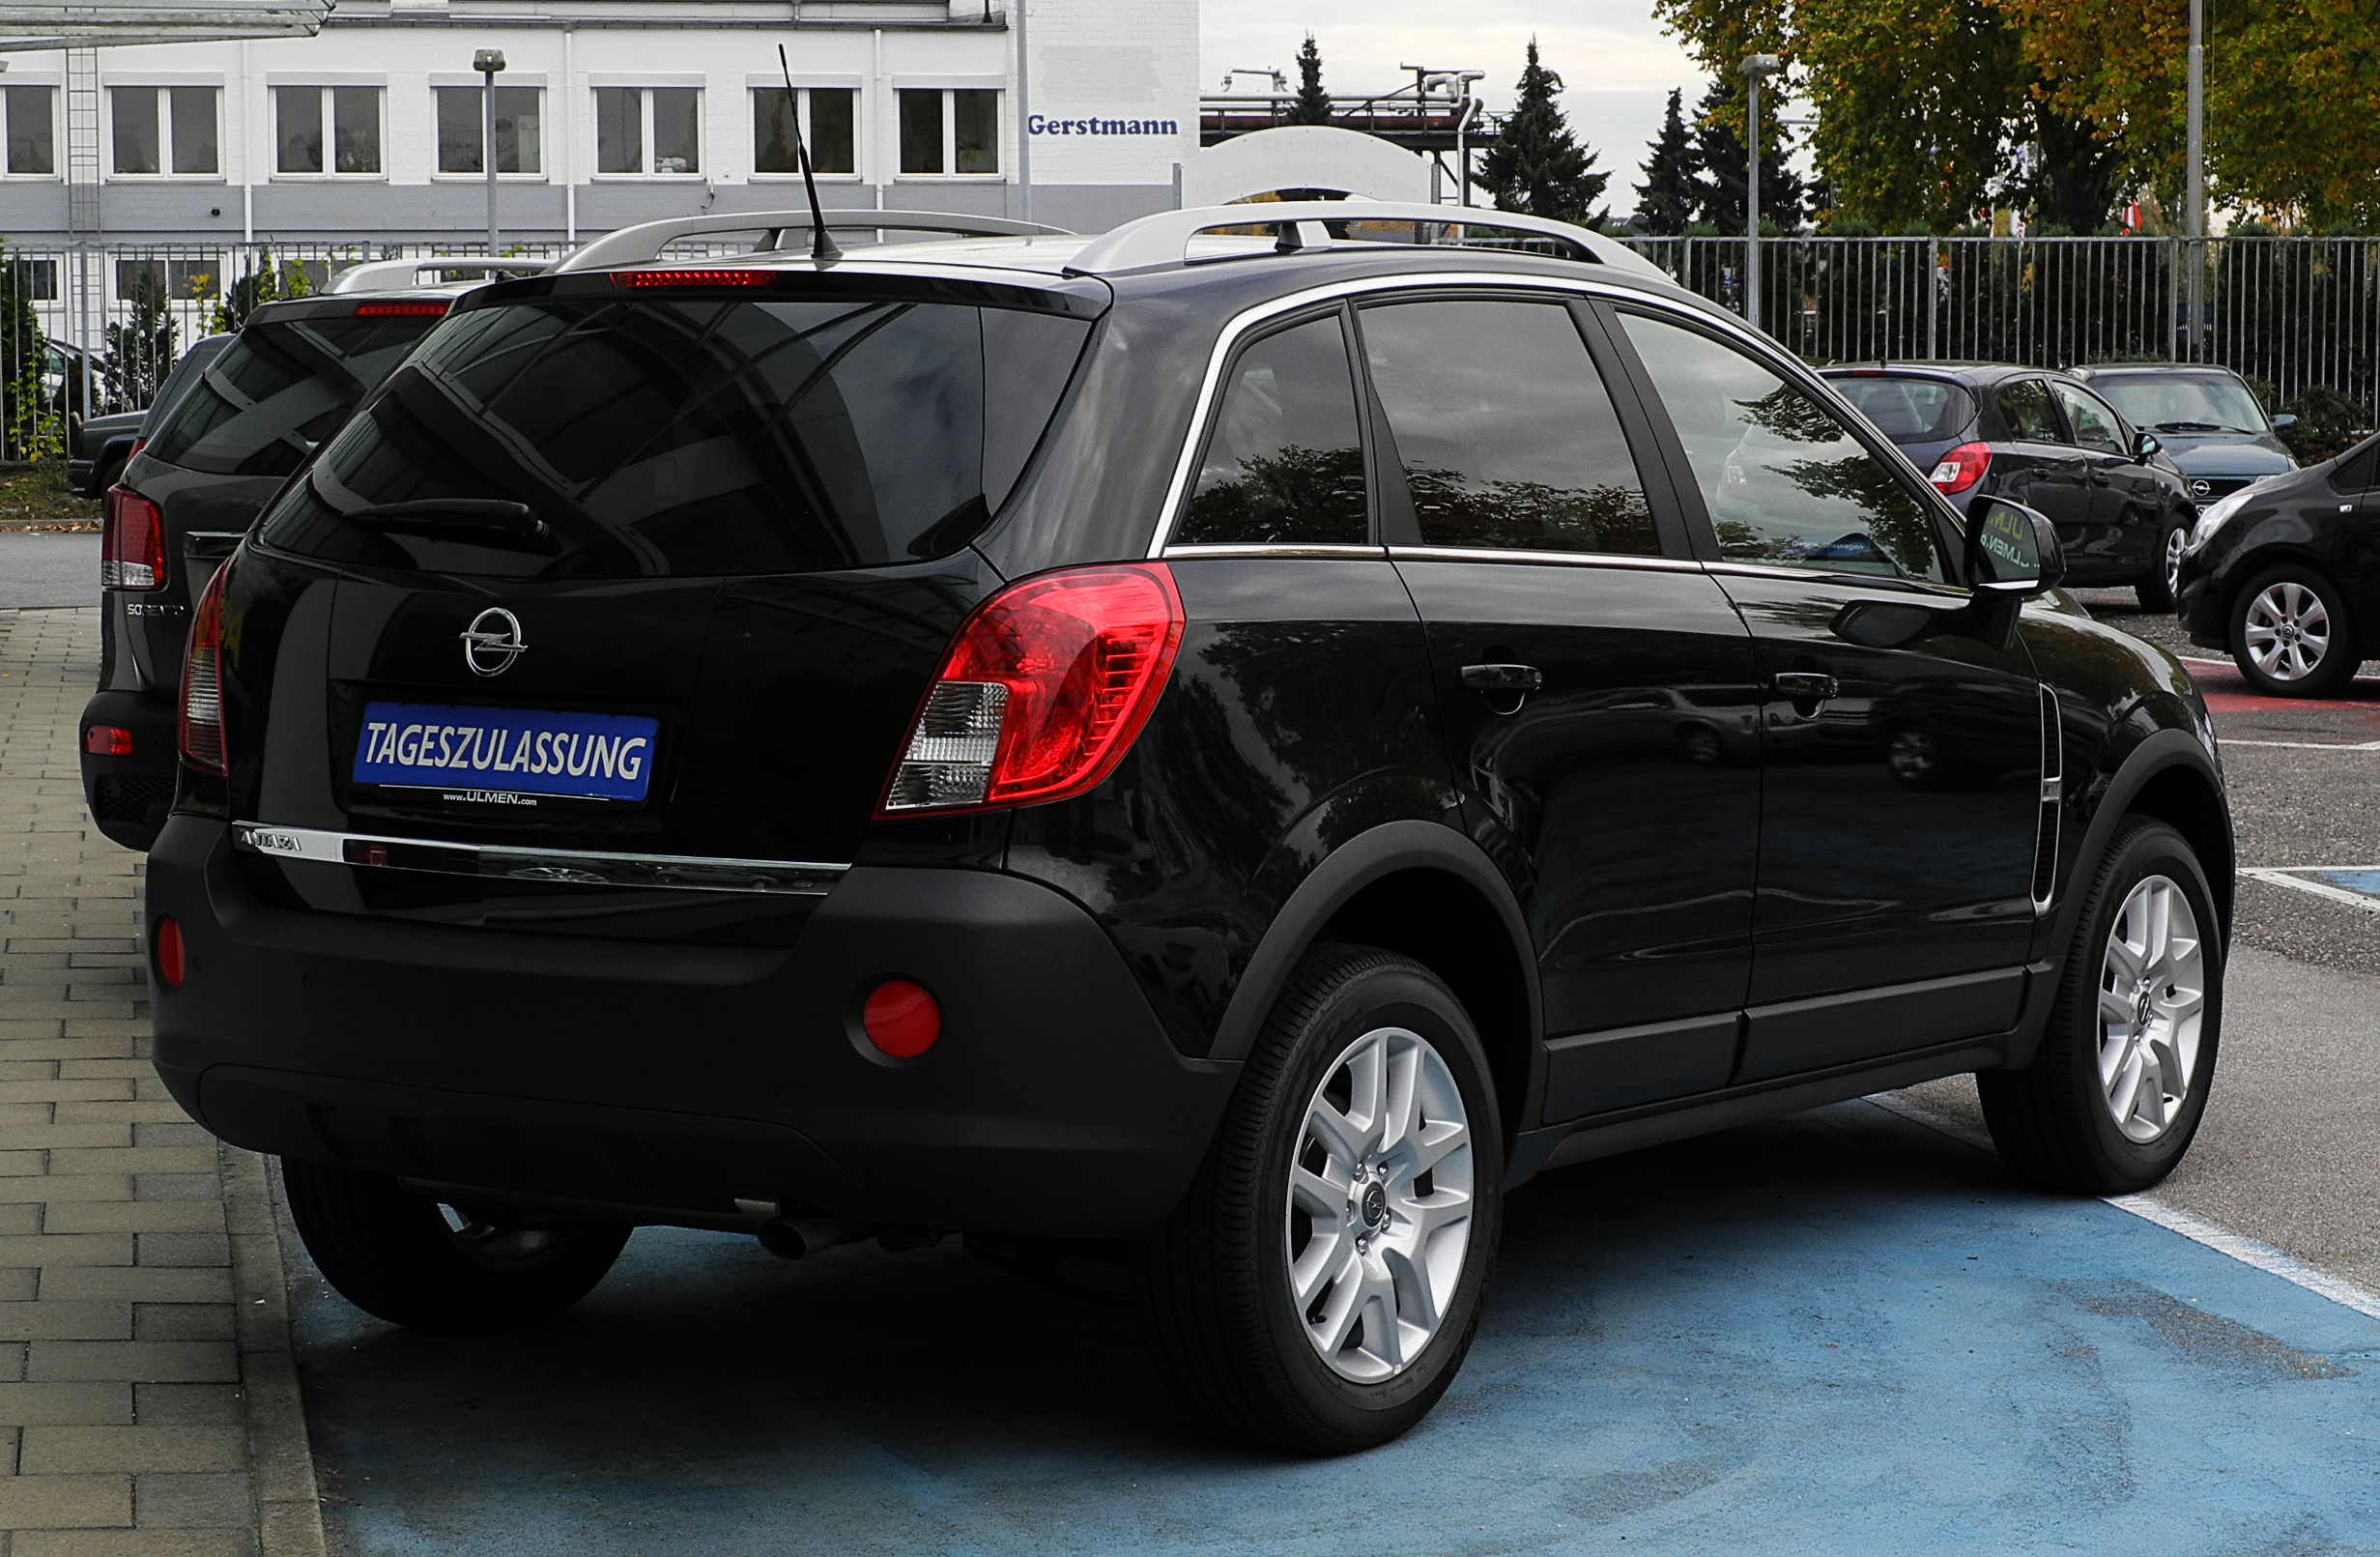 File:Opel Antara 2.4 4x4 Design Edition (Facelift ...